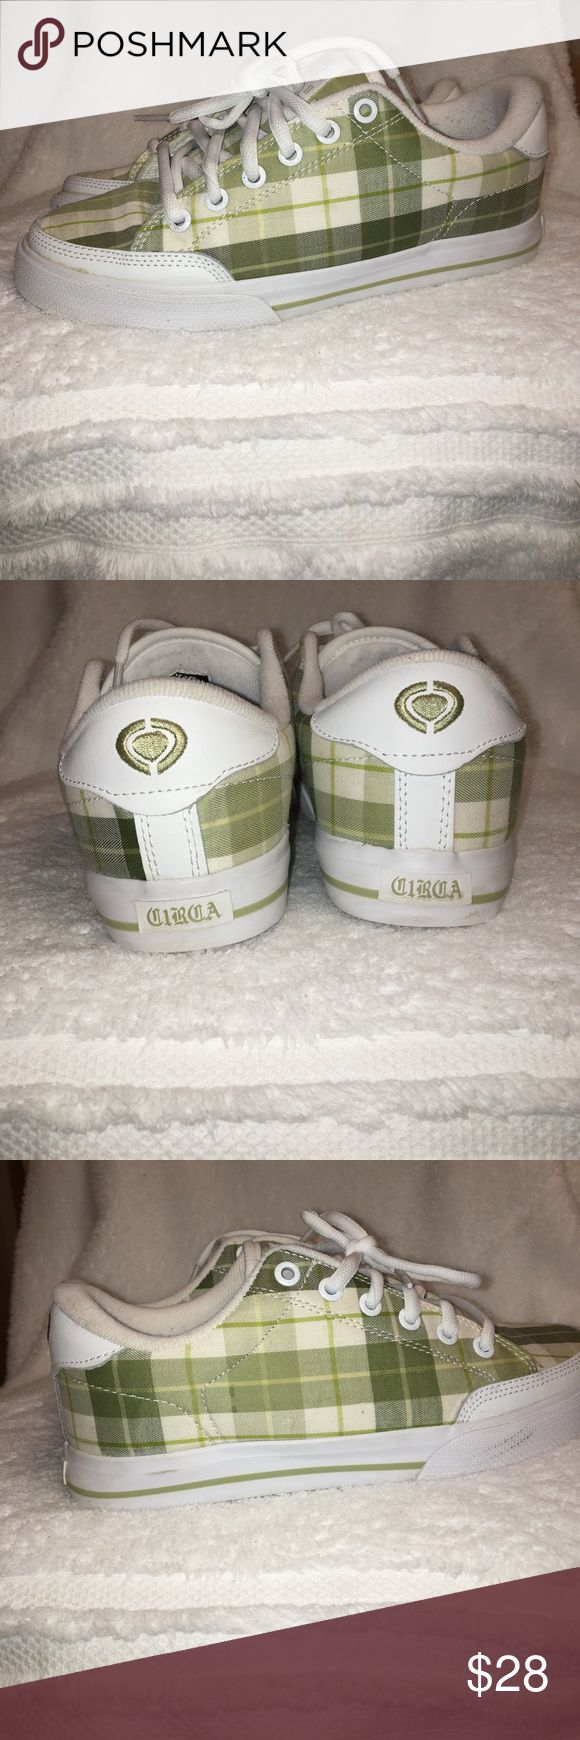 Like new plaid skate shoes White and olive green plaid Circa skate shoes. Worn only twice - mint condition. Does not come with box. Size 8 Circa Shoes Sneakers